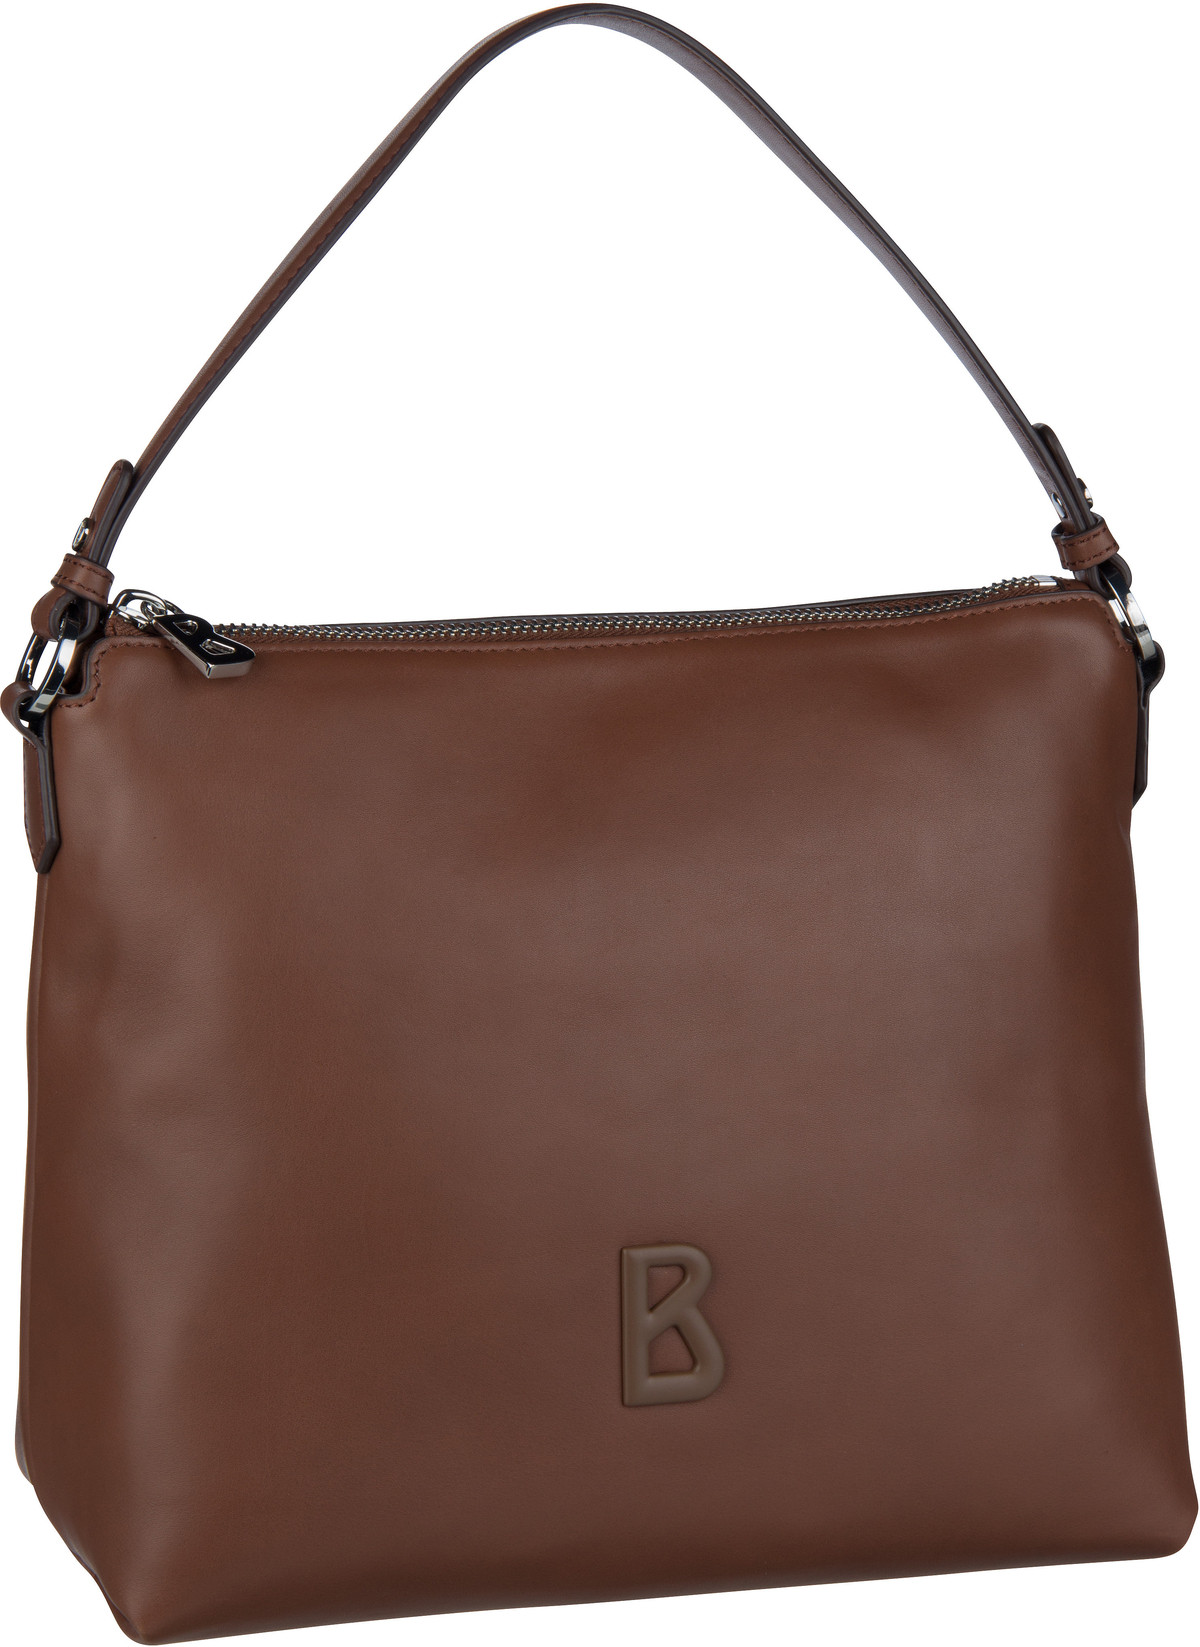 Handtasche Laax Lore Hobo MHZ Brown